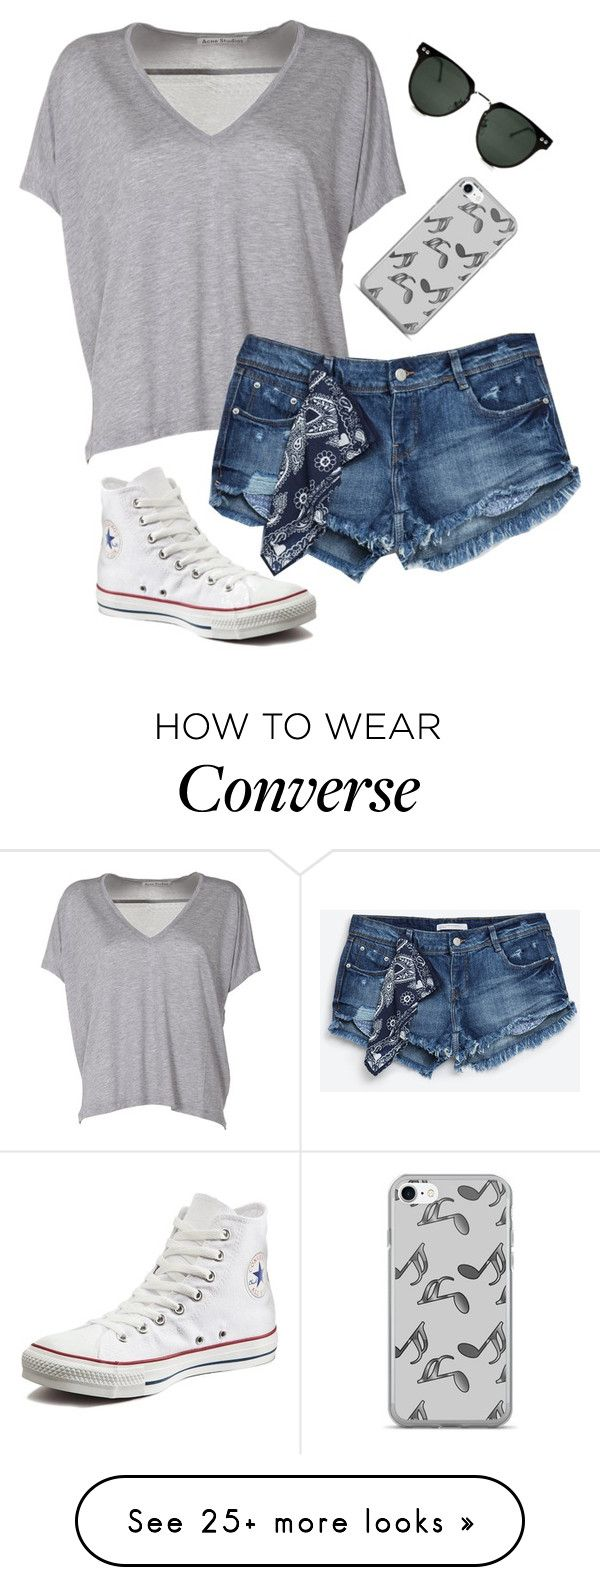 """Simple"" by clouded4ever on Polyvore featuring Acne Studios, Zara, Converse, Music Notes and Spitfire"